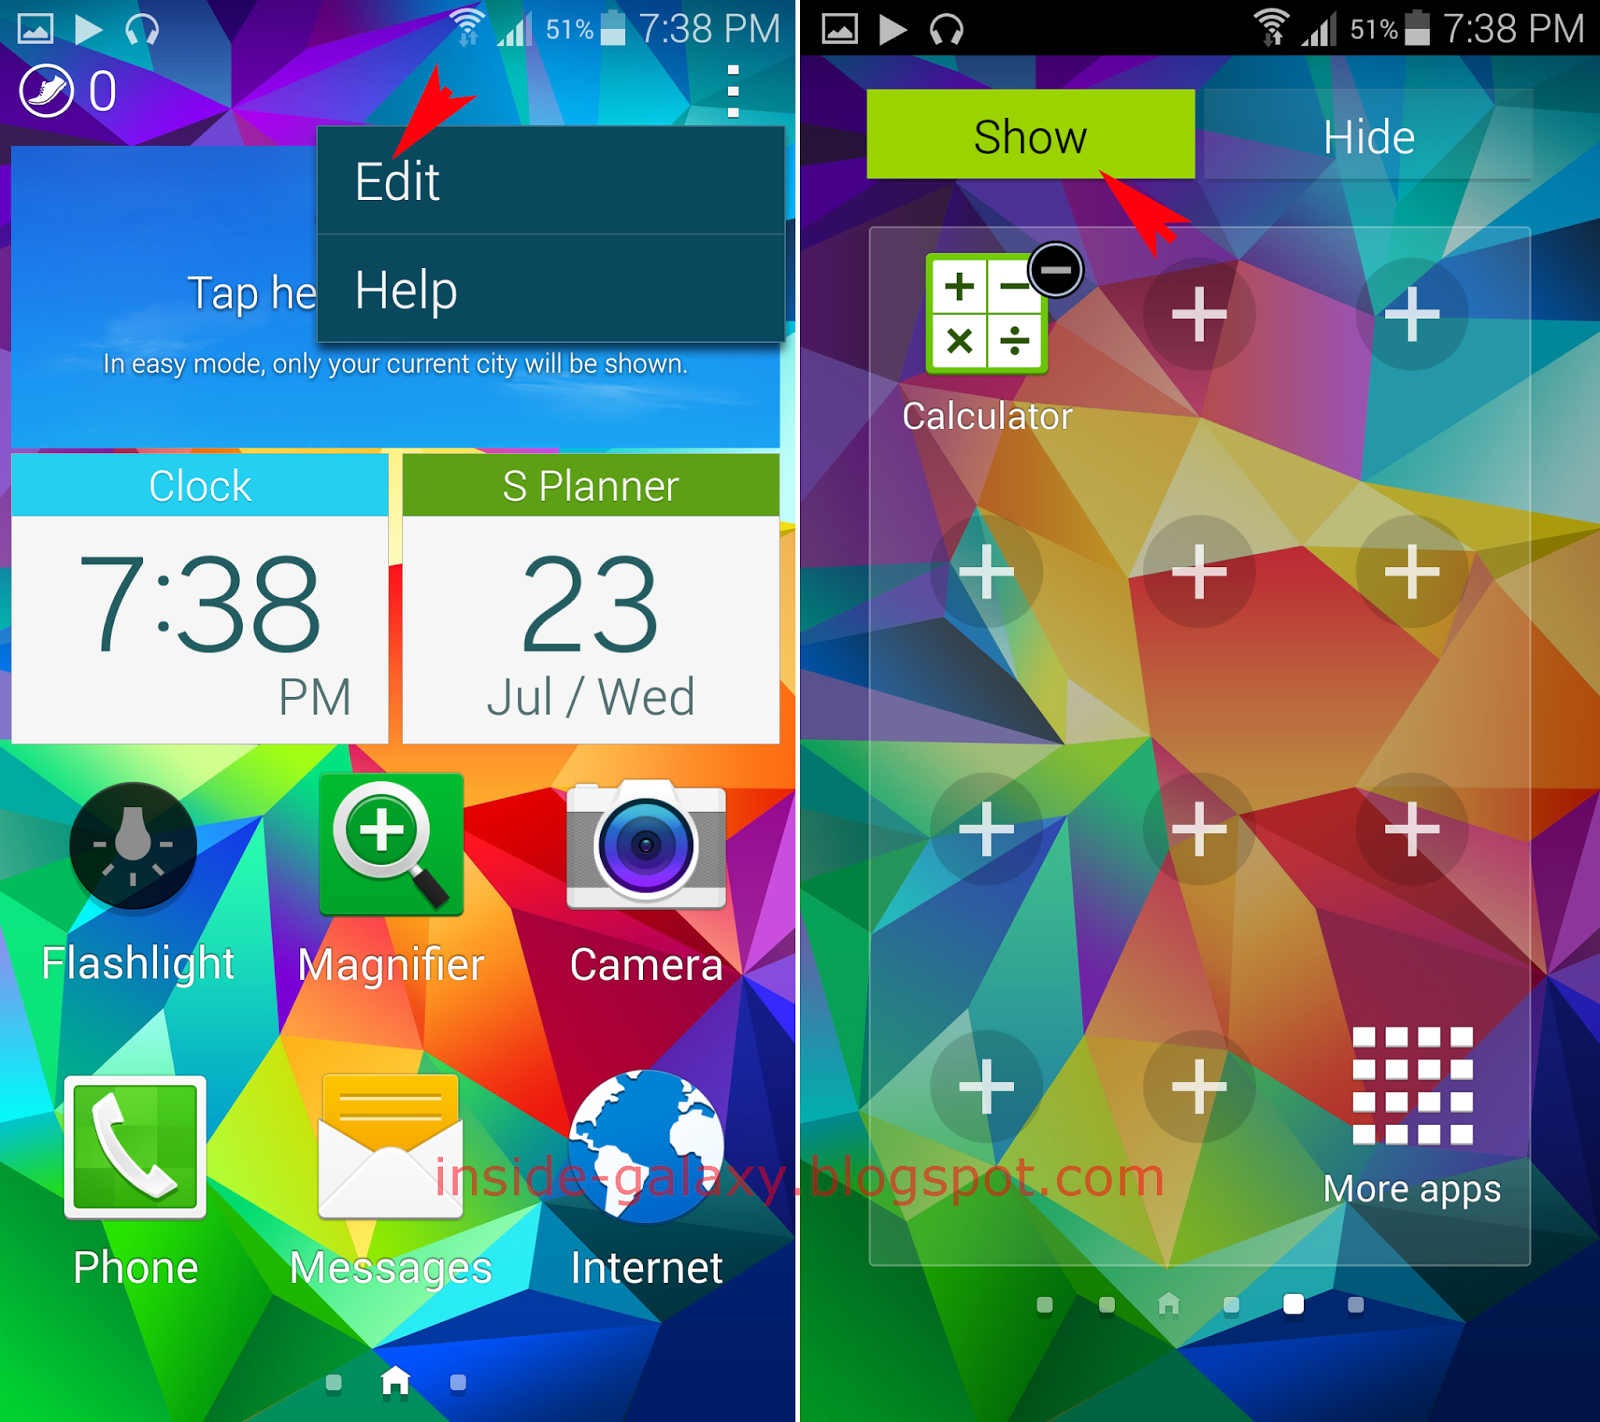 how to change the app icon on samsung galaxy s5